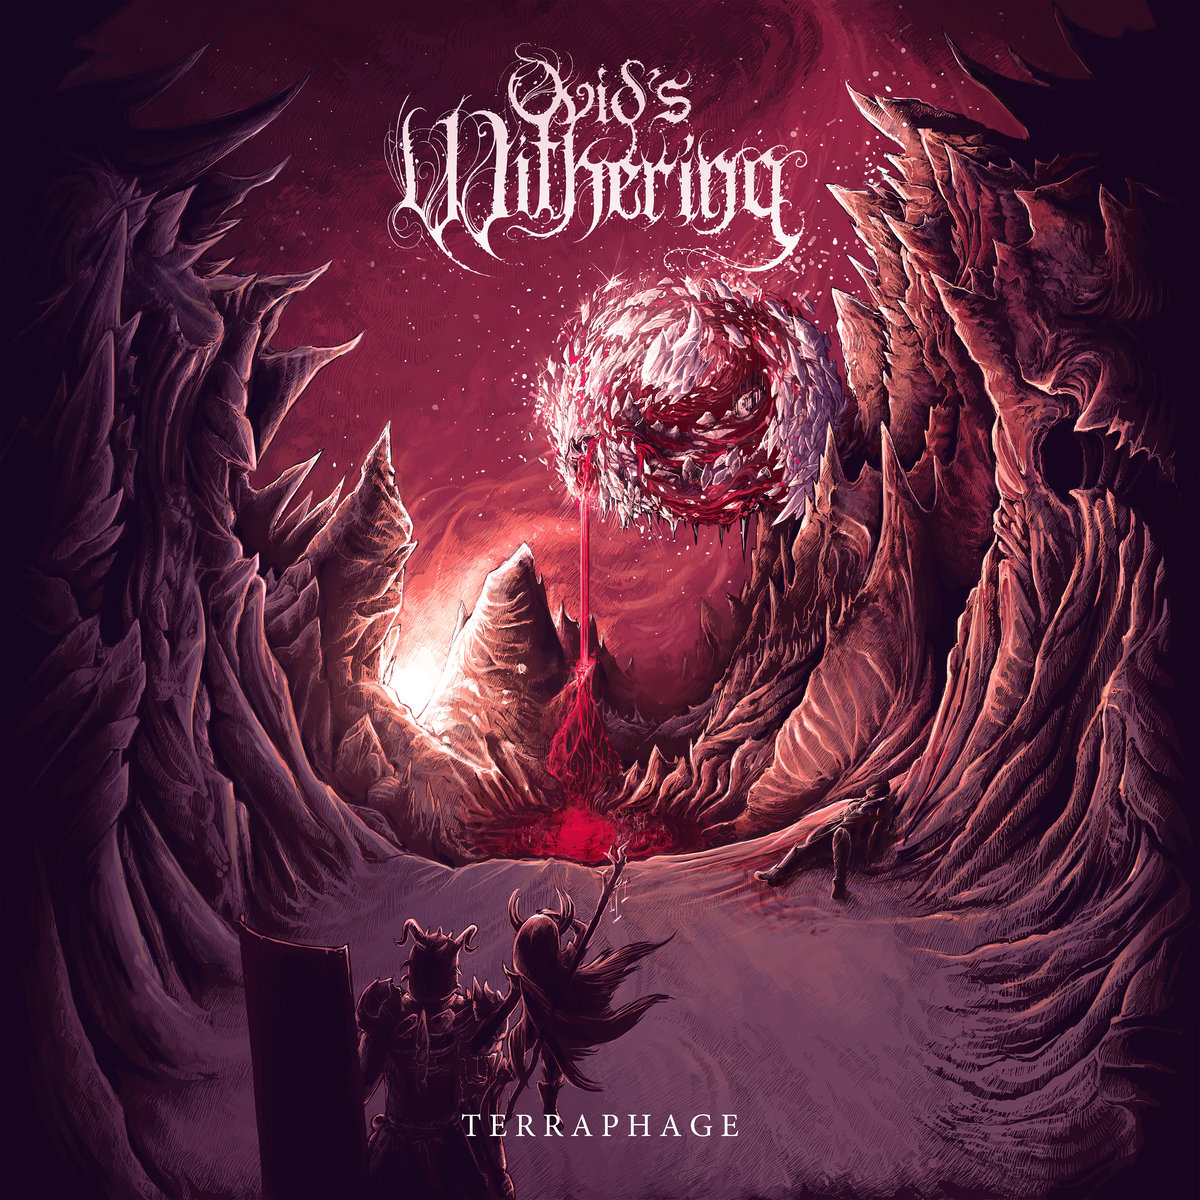 Ovid's Withering - Terraphage (2020)